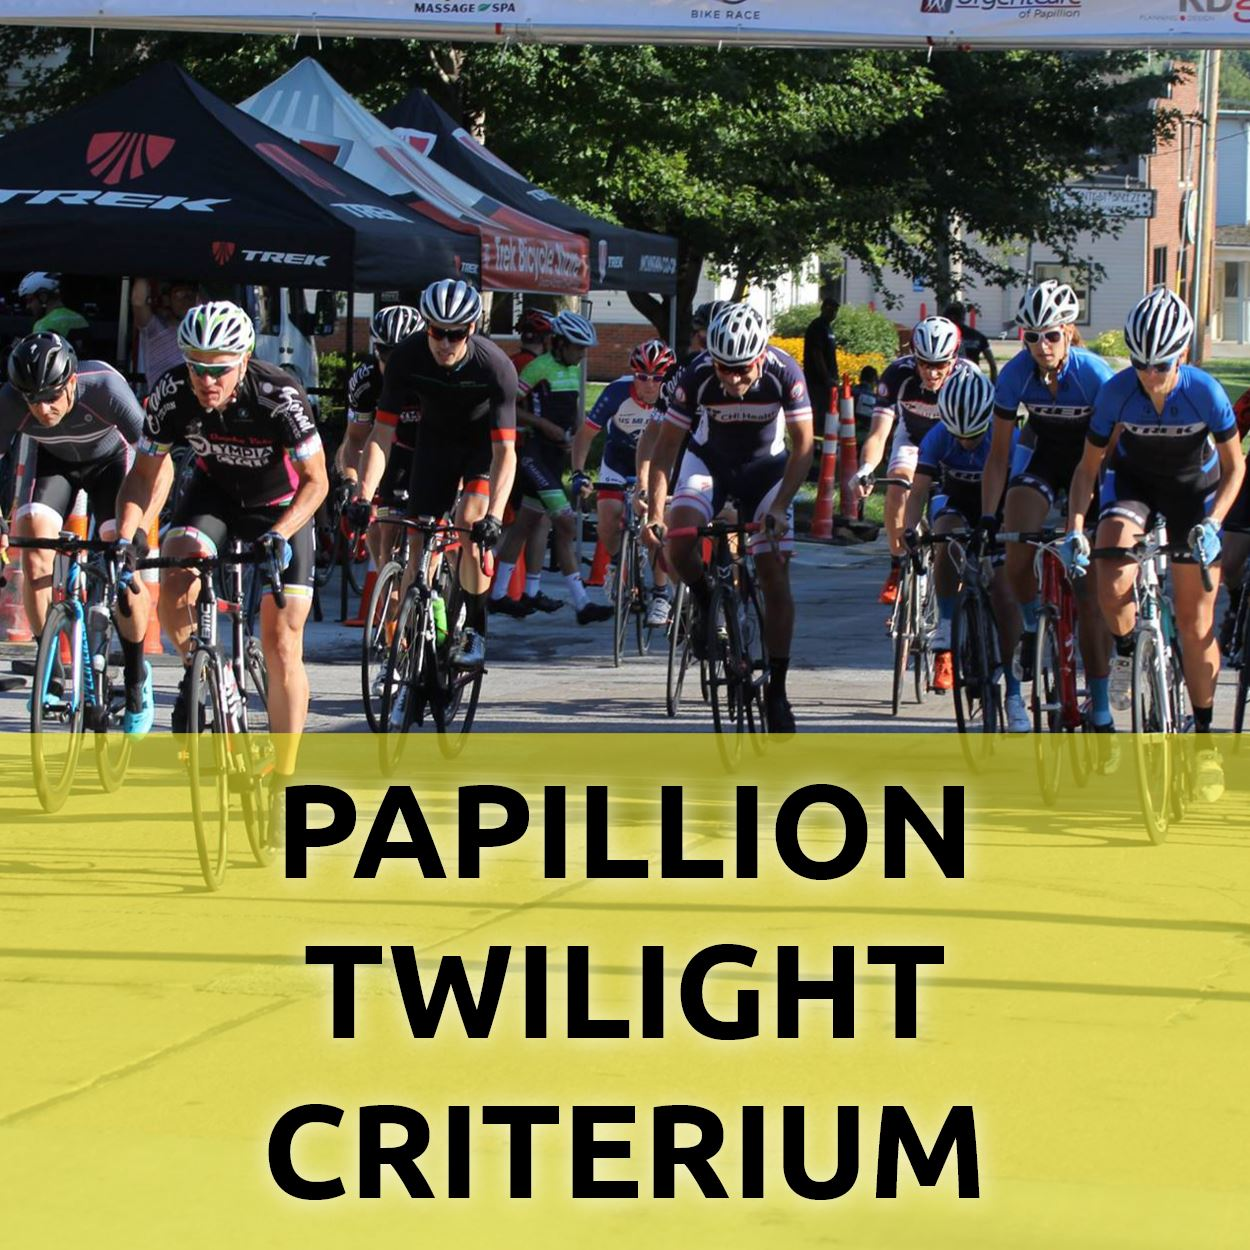 Papillion Twilight Criterium